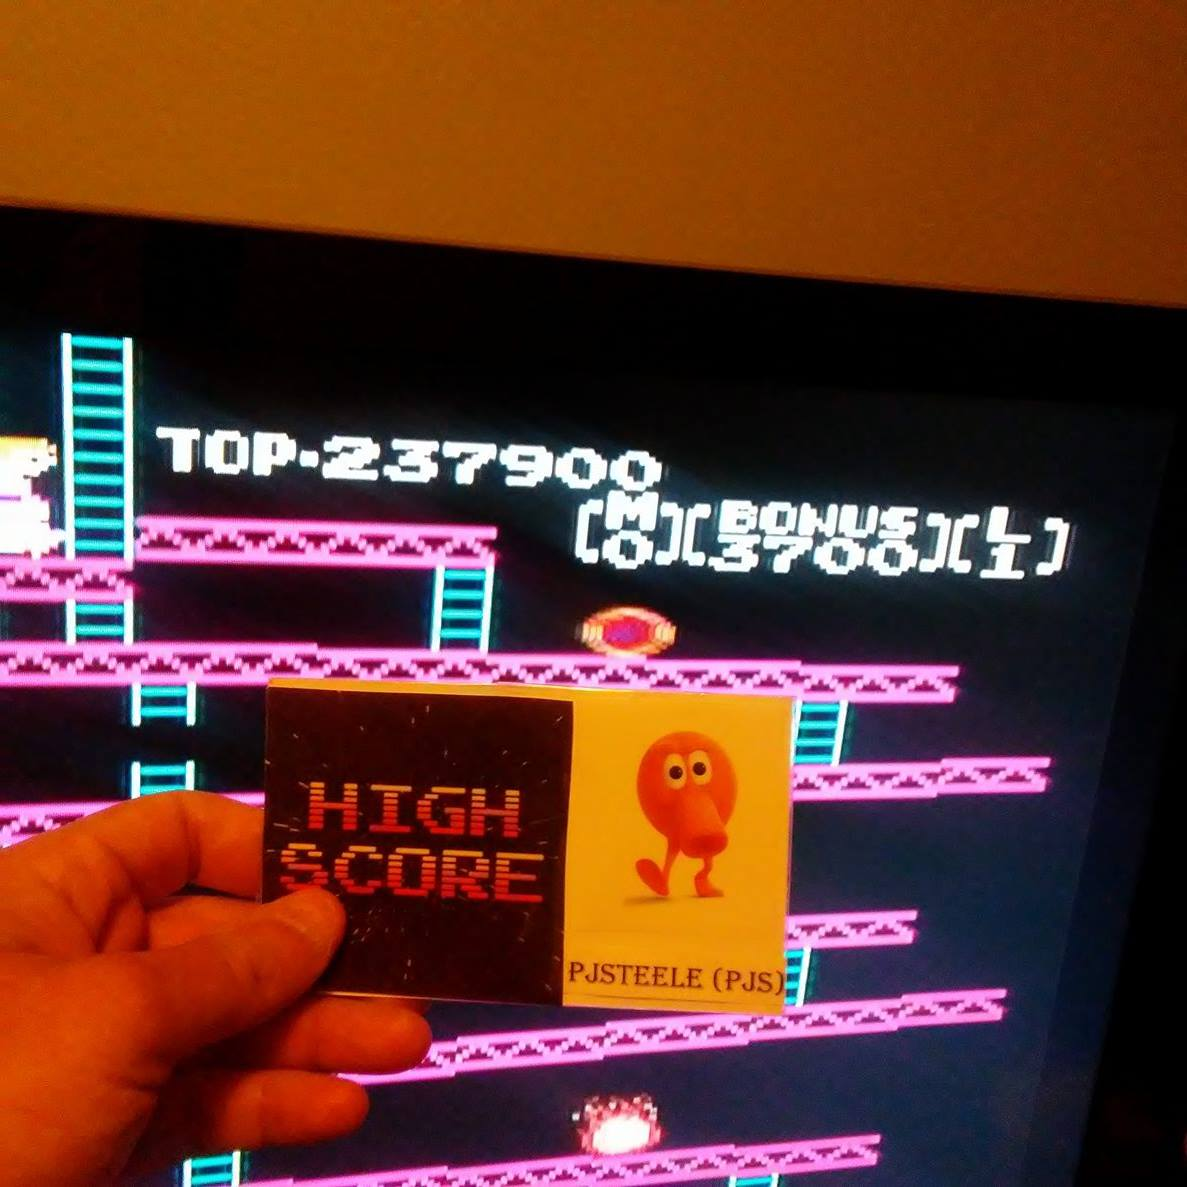 Pjsteele: Donkey Kong (NES/Famicom Emulated) 237,900 points on 2017-05-06 12:56:50